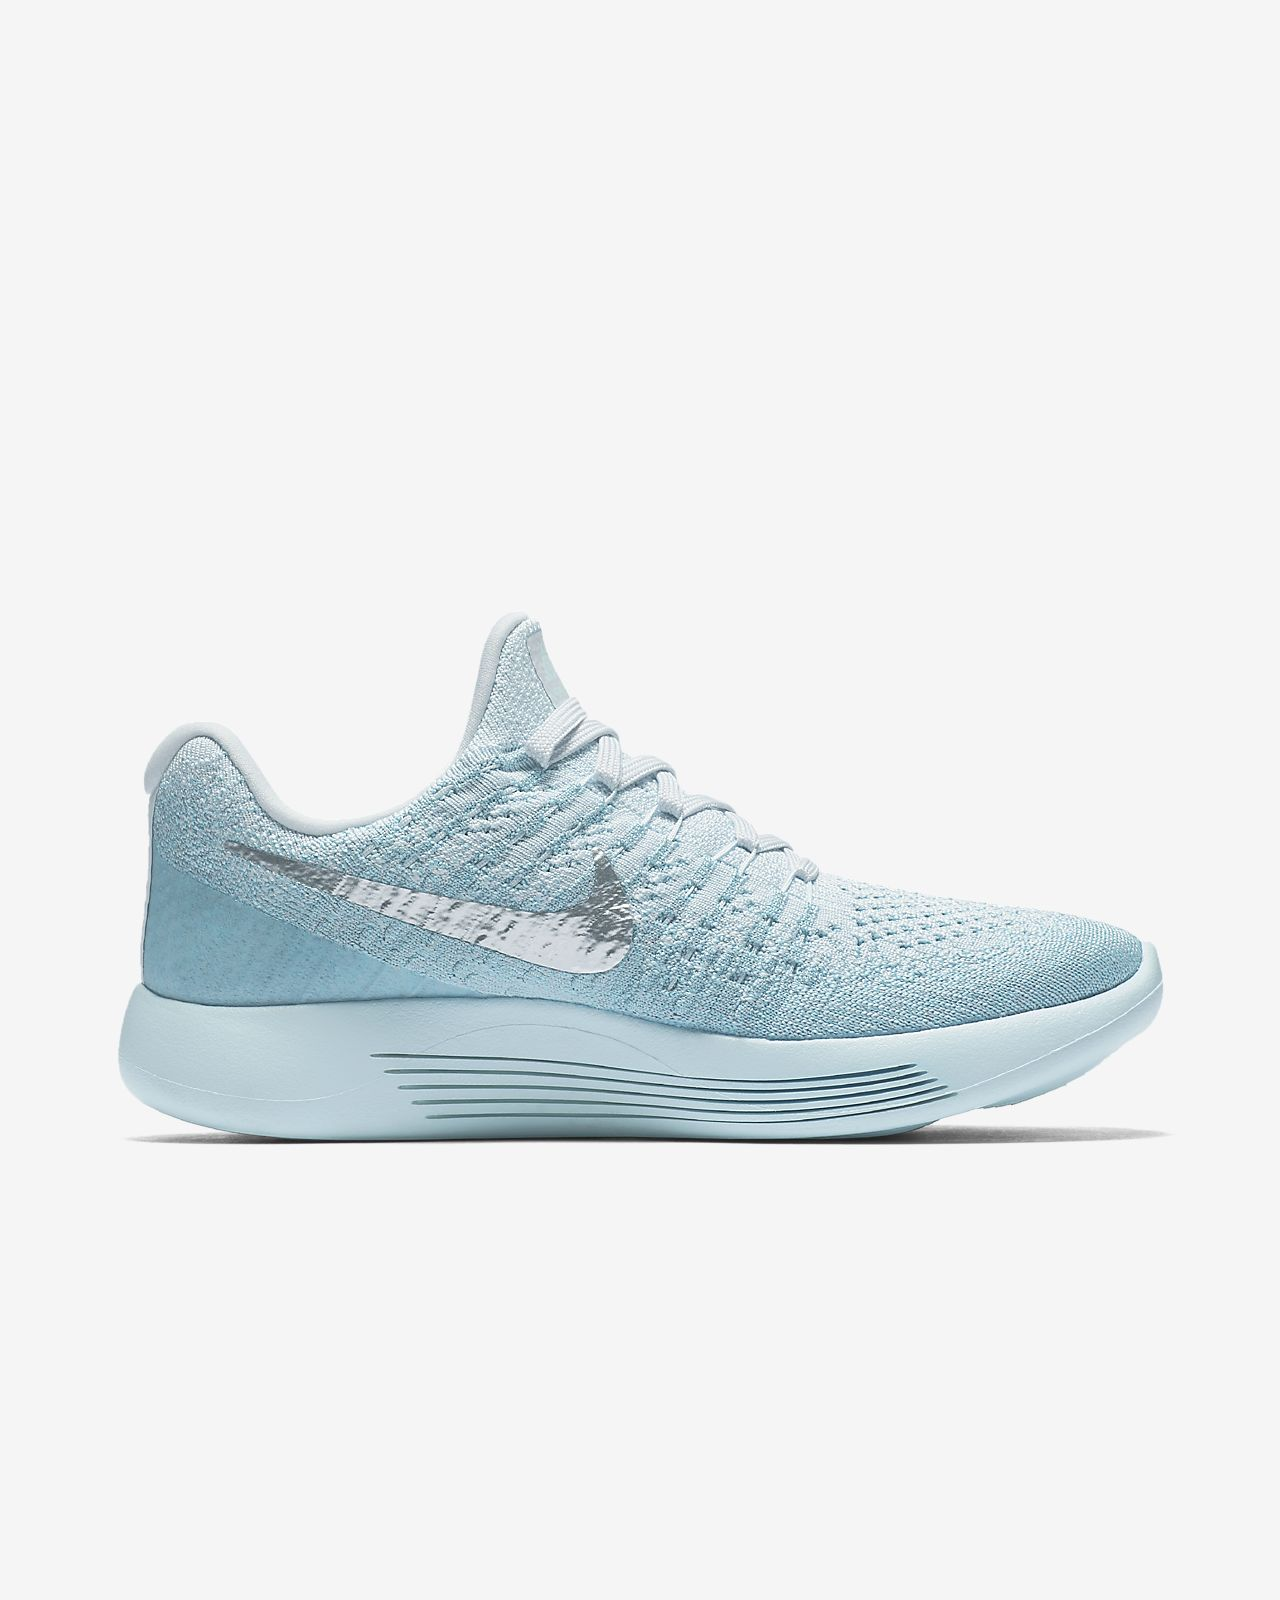 37f80652a Nike Womens Runners   Buy Nike Sneakers   Shoes